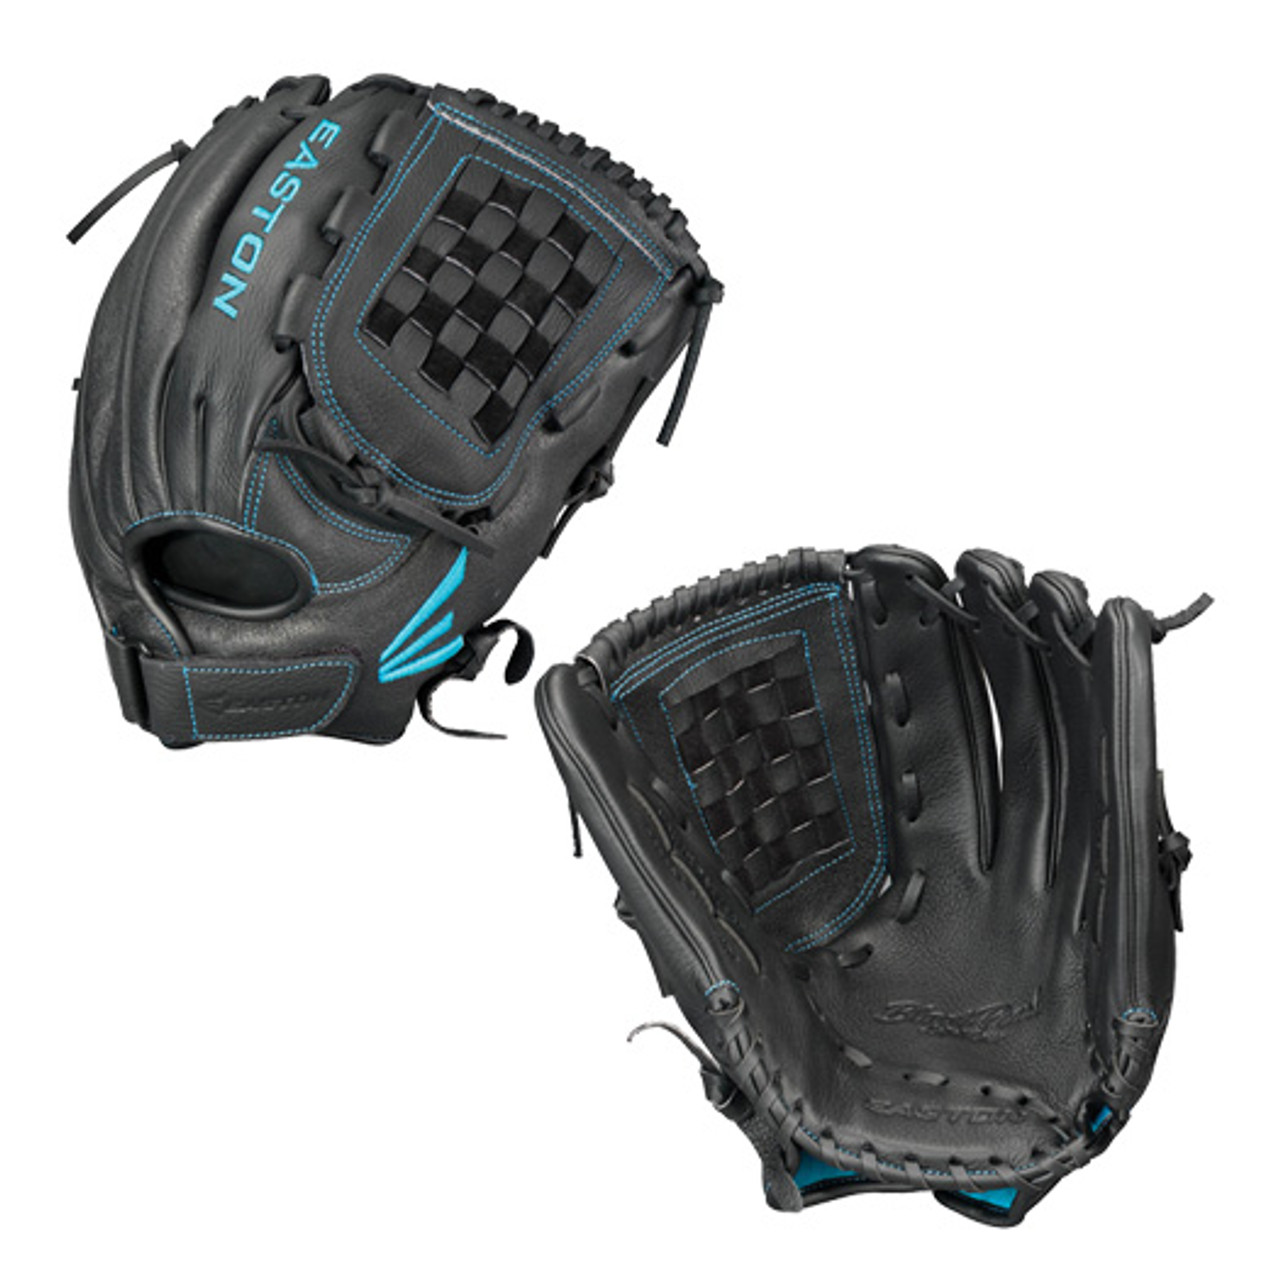 """Easton BP1250FP 12.5/"""" Black Pearl Fastpitch Series Youth Outfield Softball Glove"""